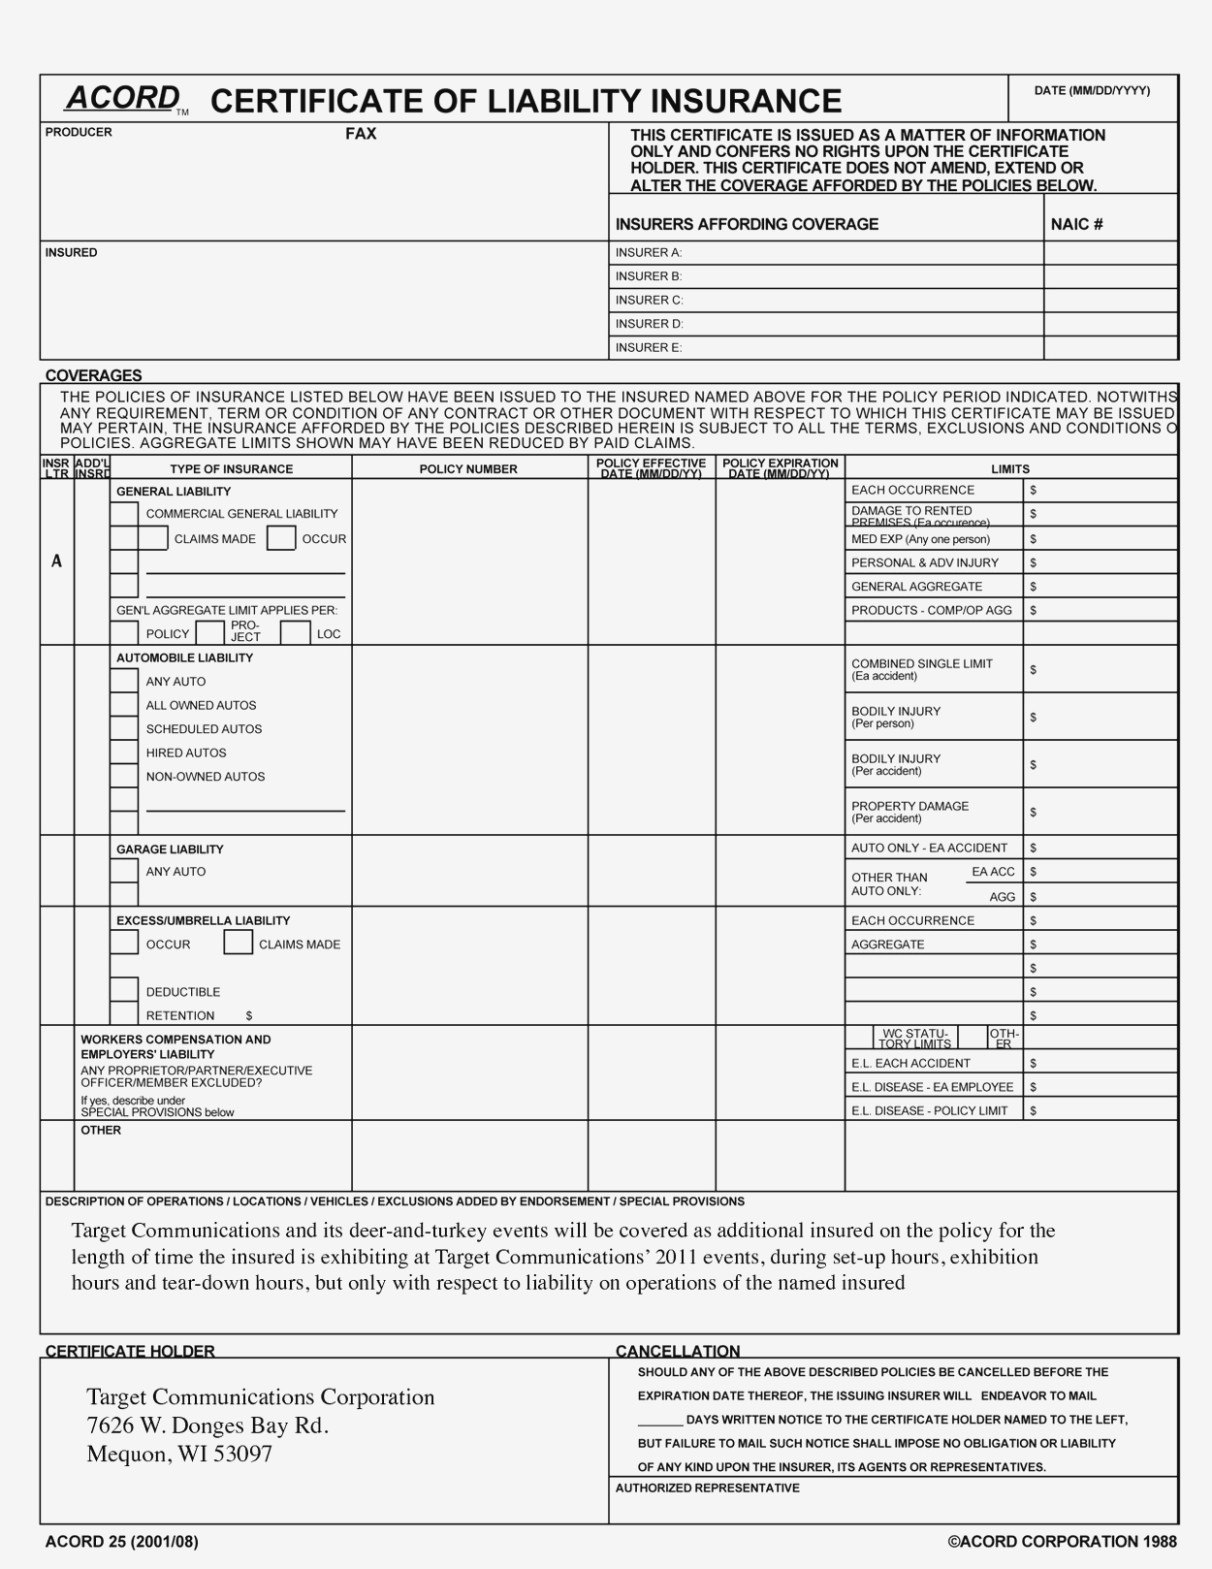 New Certificate Of Liability Insurance Form Template – Document Regarding Certificate Of Liability Insurance Template